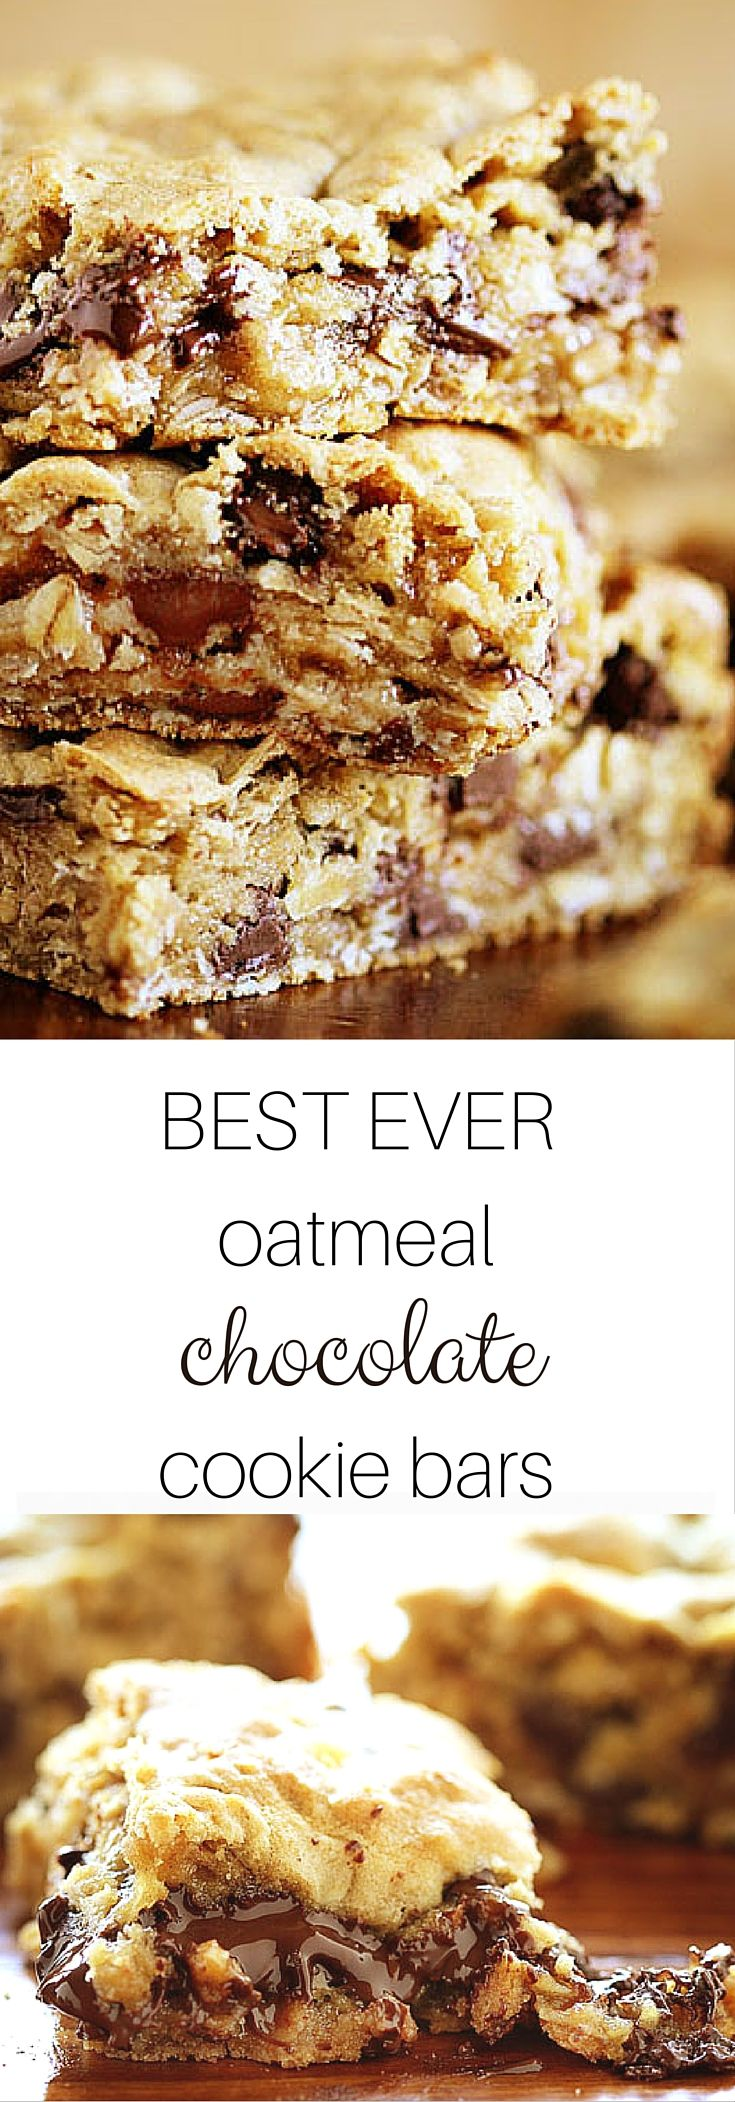 BAKE SALE APPROVED! These bars sell out fast and furious and cement you in AWESOME mom status!